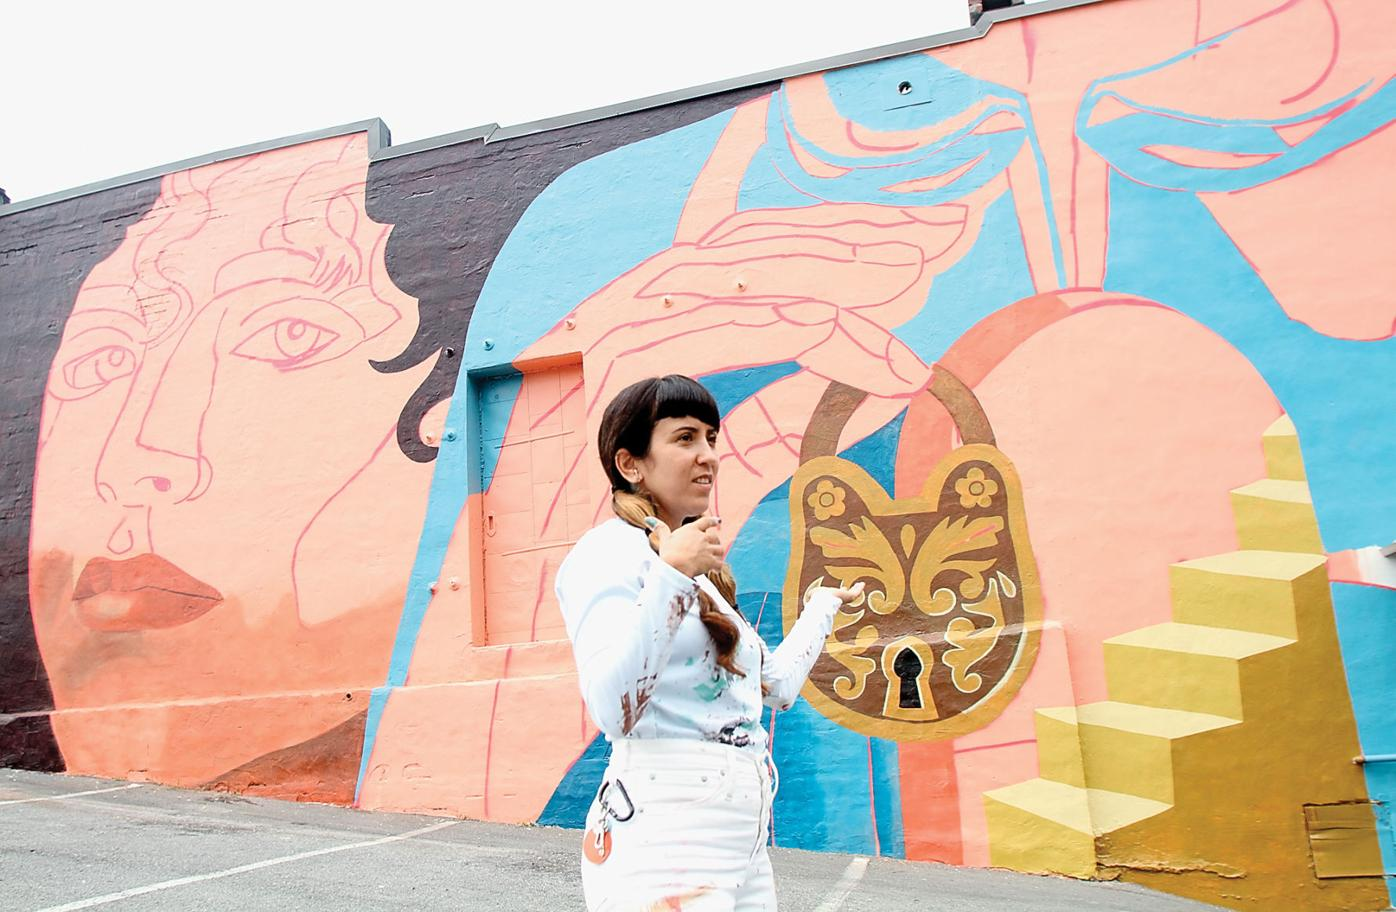 Artist Nicole Salgar talks about the inspiration for the mural she is painting